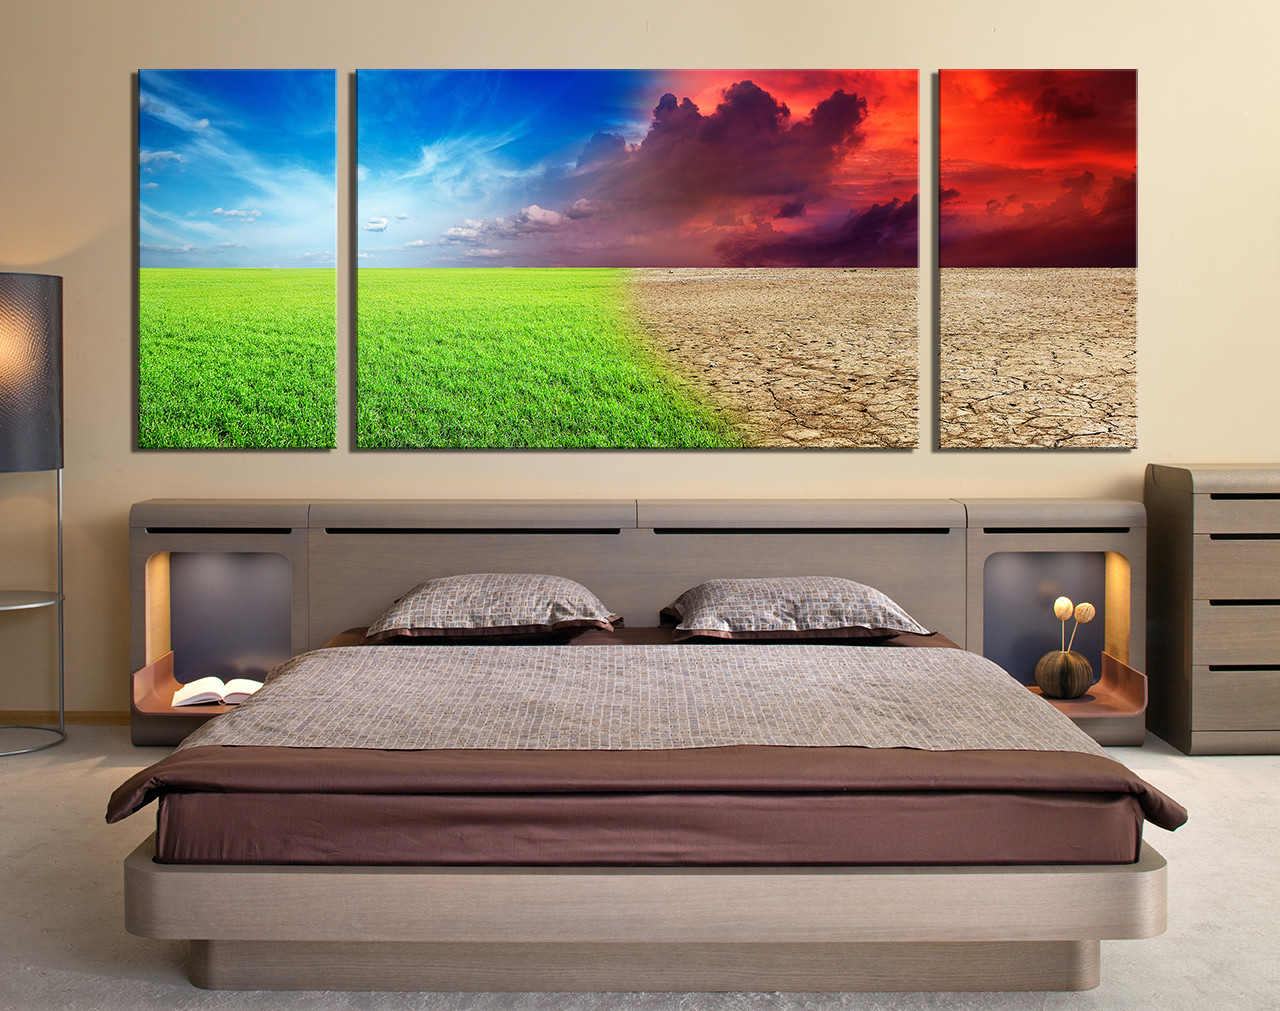 3 Piece Large Canvas, Bedroom Canvas Wall Art, Scenery Wall Decor, Colorful  Large